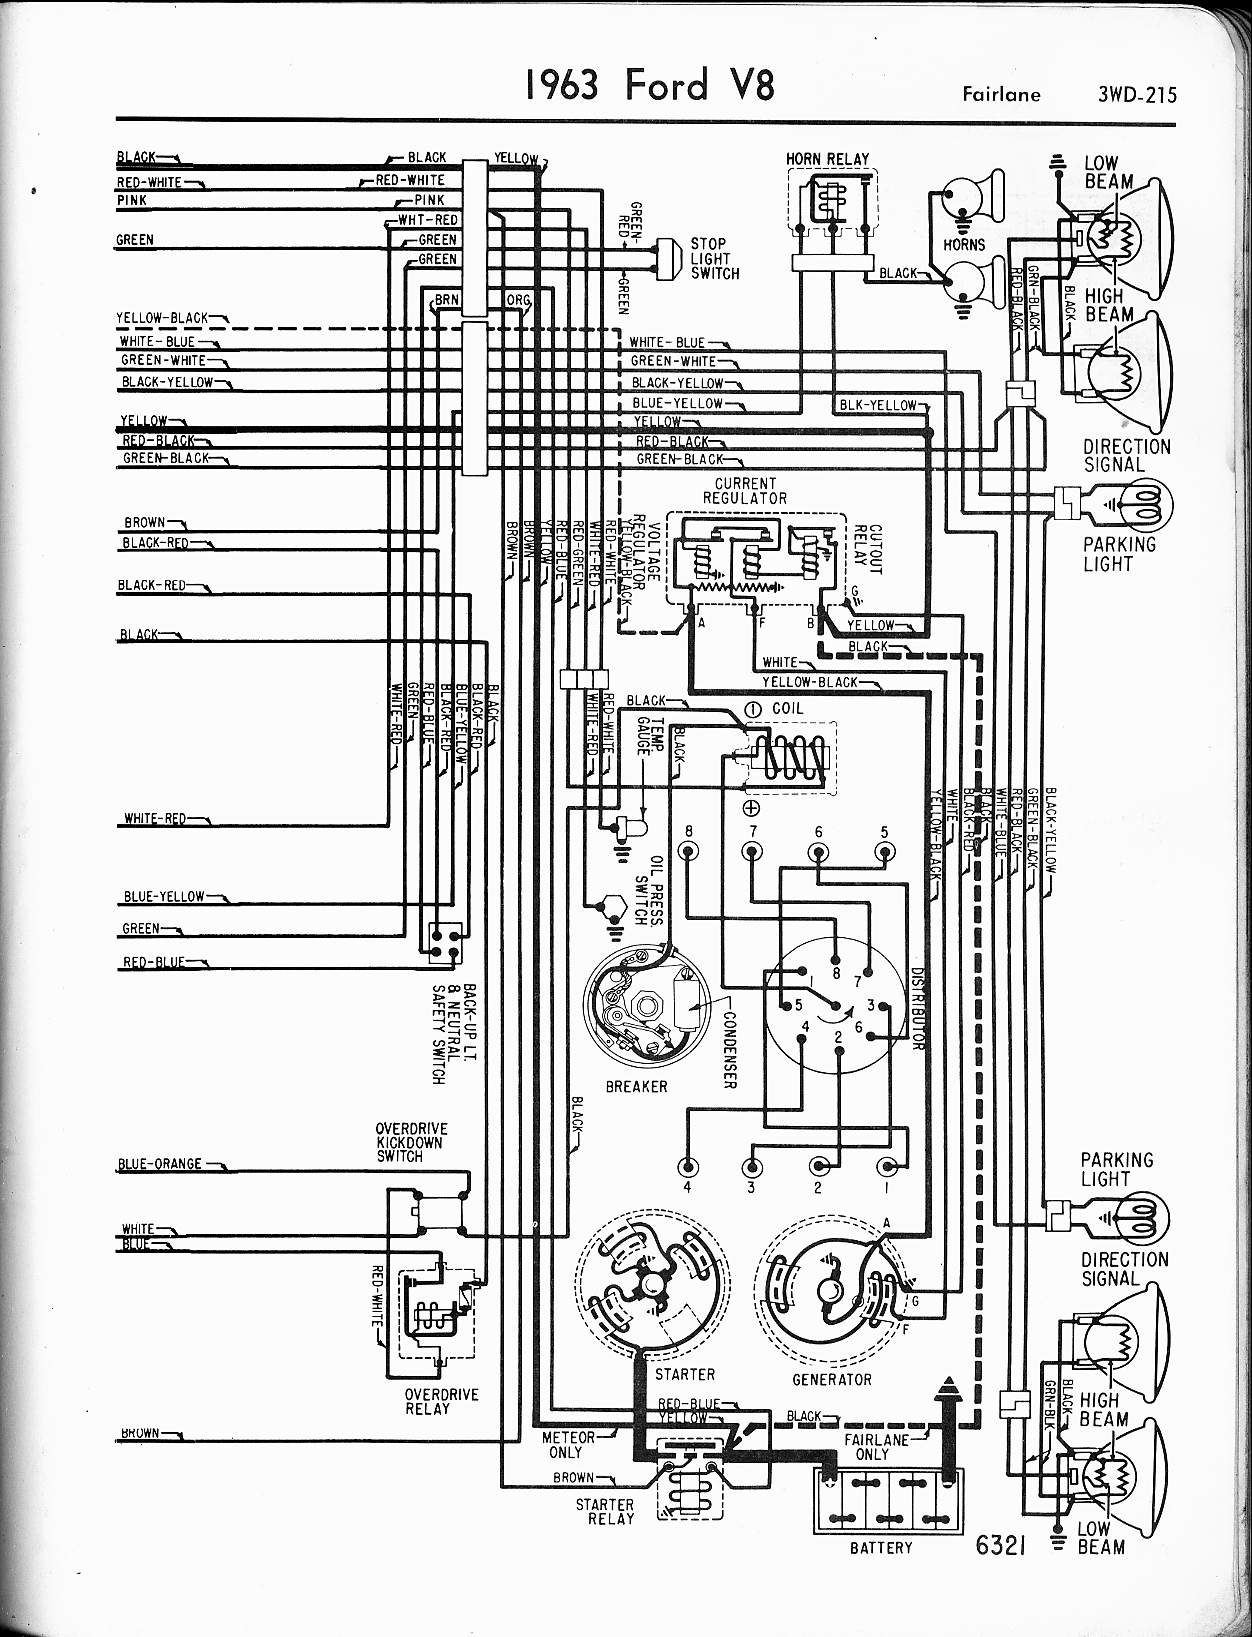 1963 Thunderbird Wiring Diagram Manual Guide 63 Corvair Fuse Box 57 65 Ford Diagrams Rh Oldcarmanualproject Com 1964 Ac Compressor